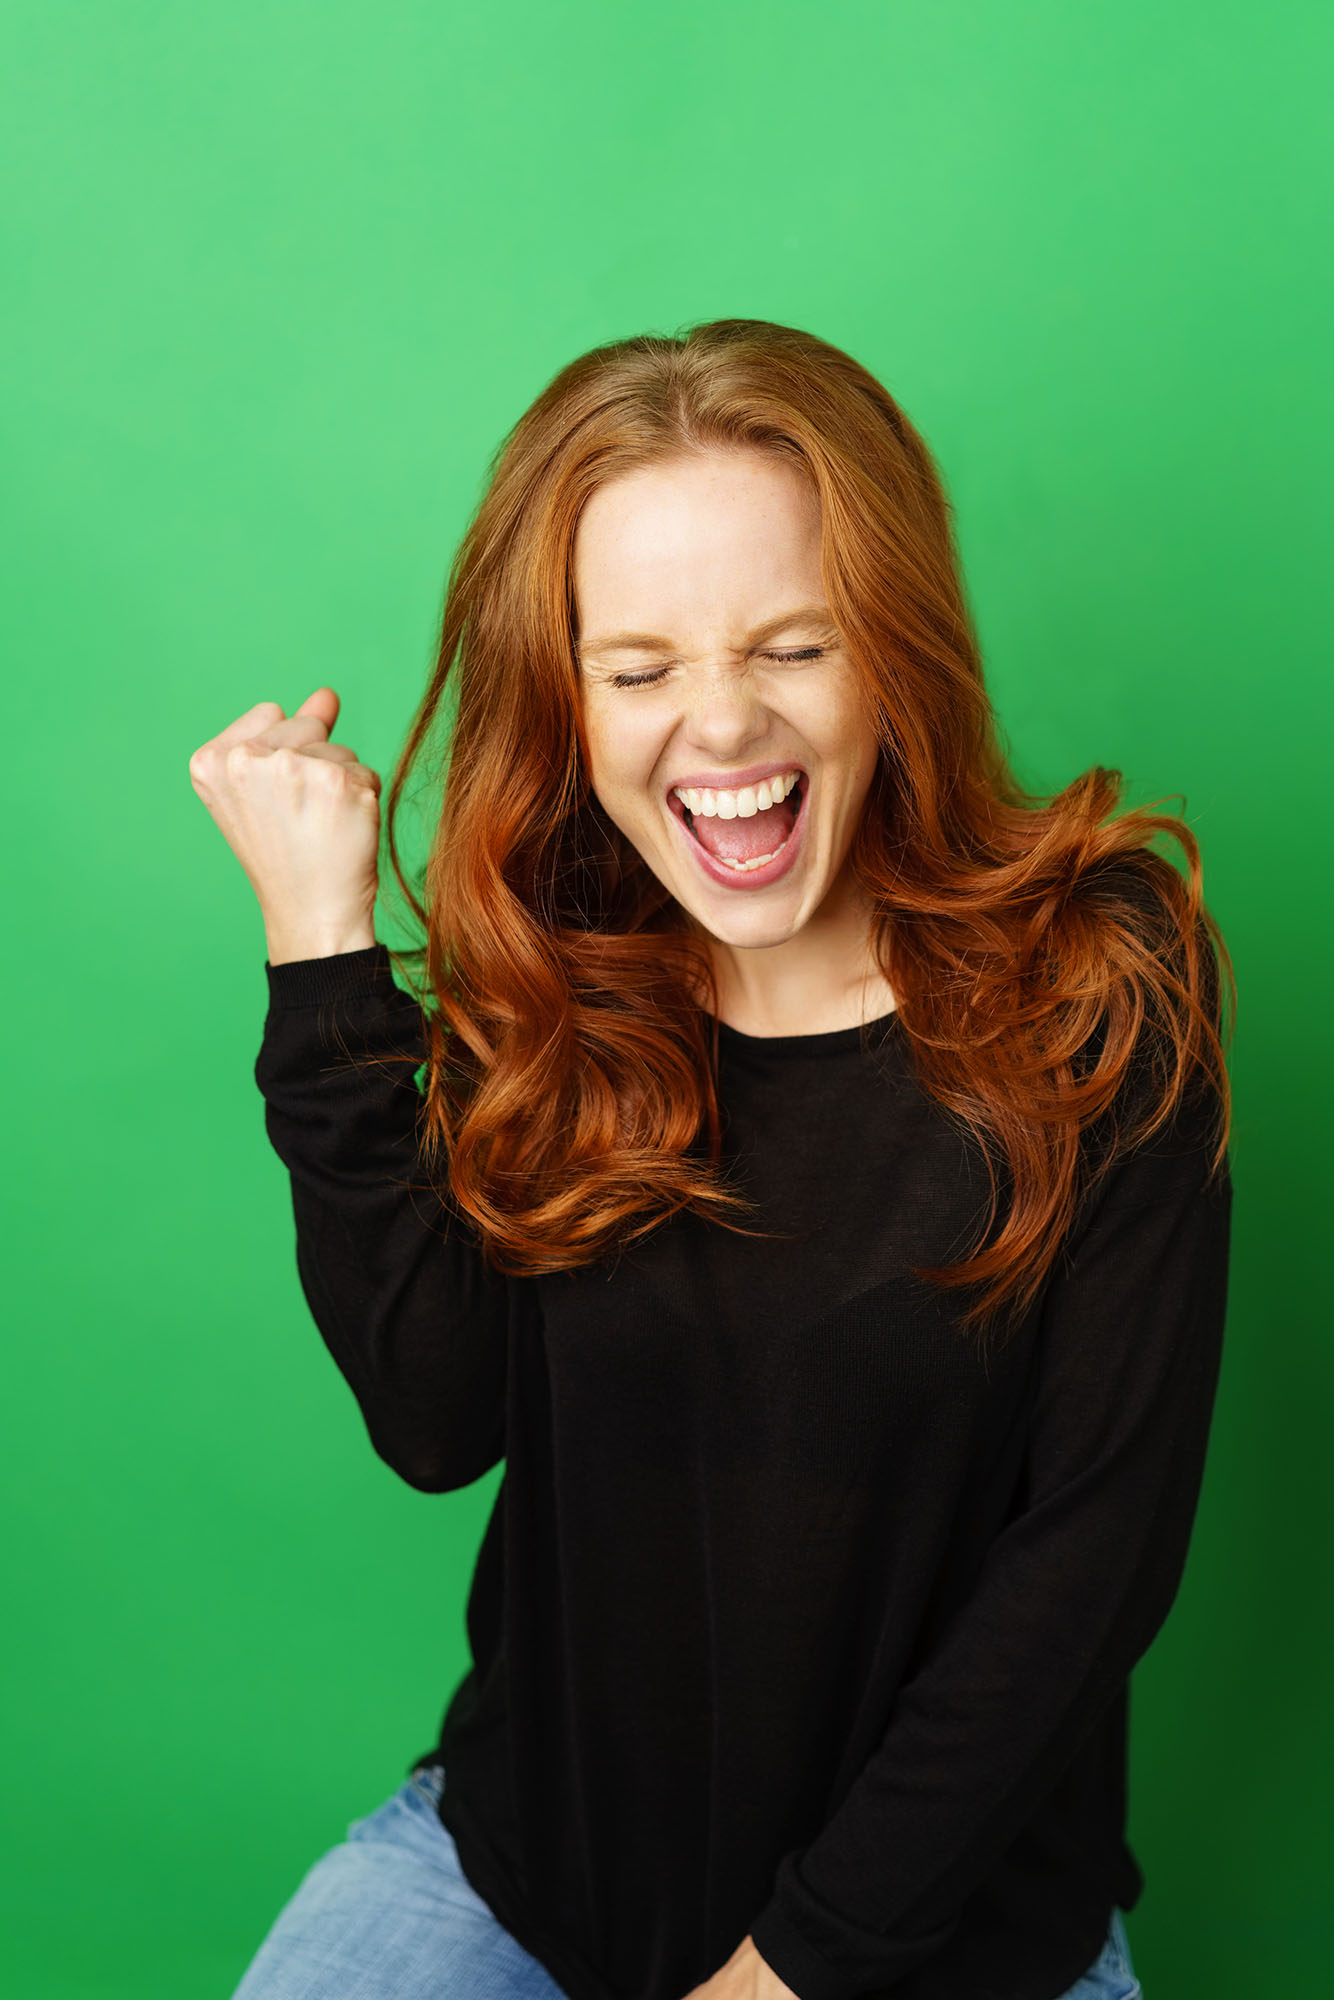 Jubilant excited young woman cheering and punching the air with her fist over a green studio background